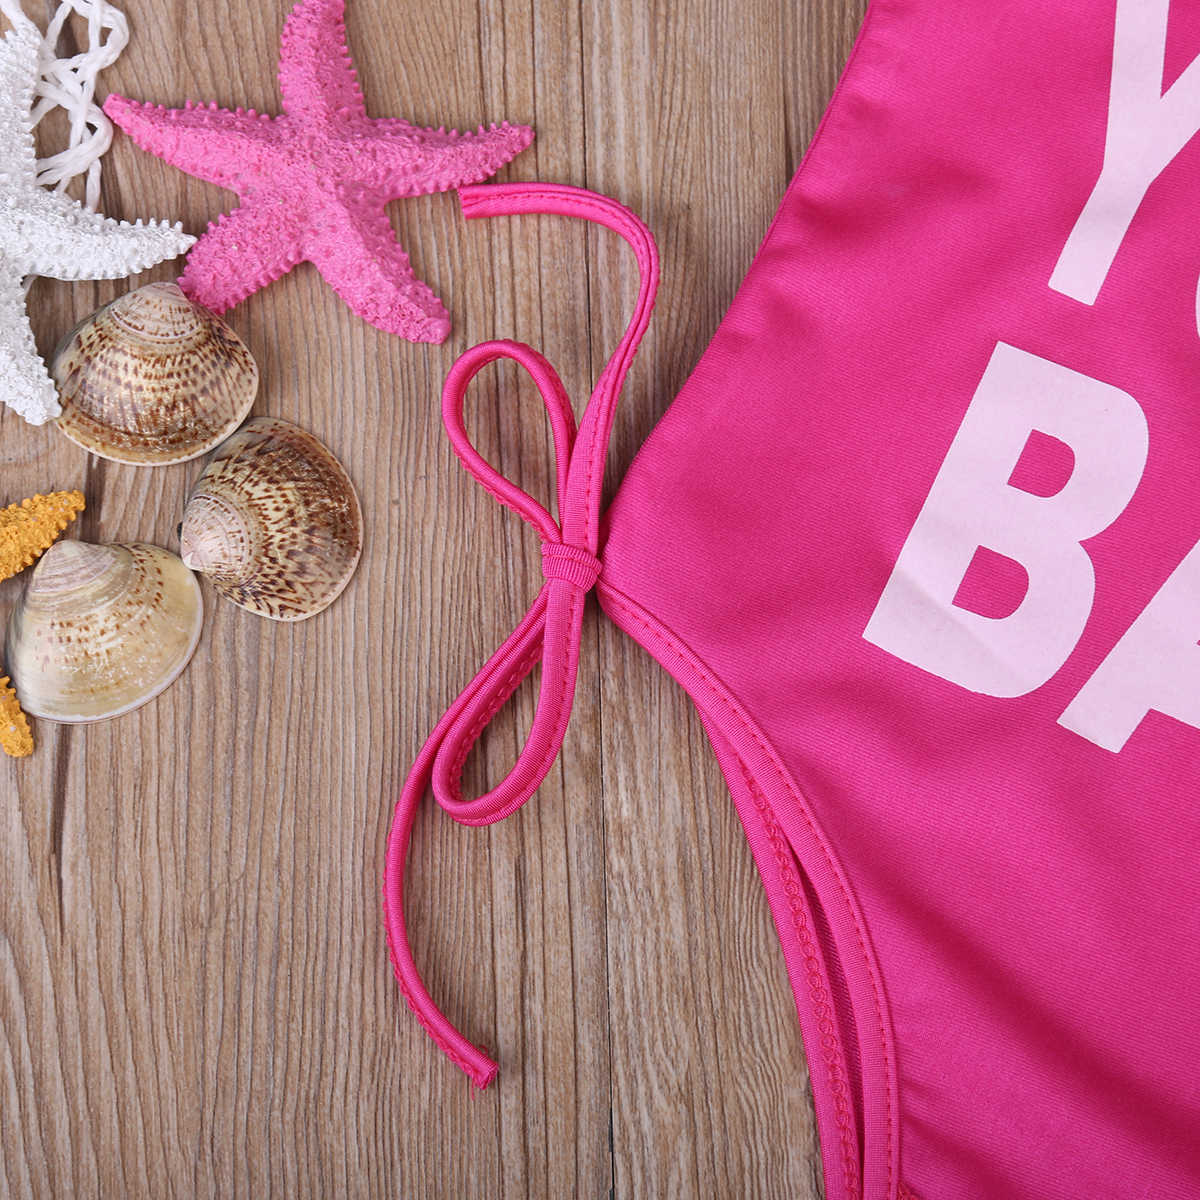 3ef5f5fda5 ... Letter Baby/Mommy One-piece Family Matching Swimsuit Women's One Piece  Swimsuit Swimwear Bathing ...